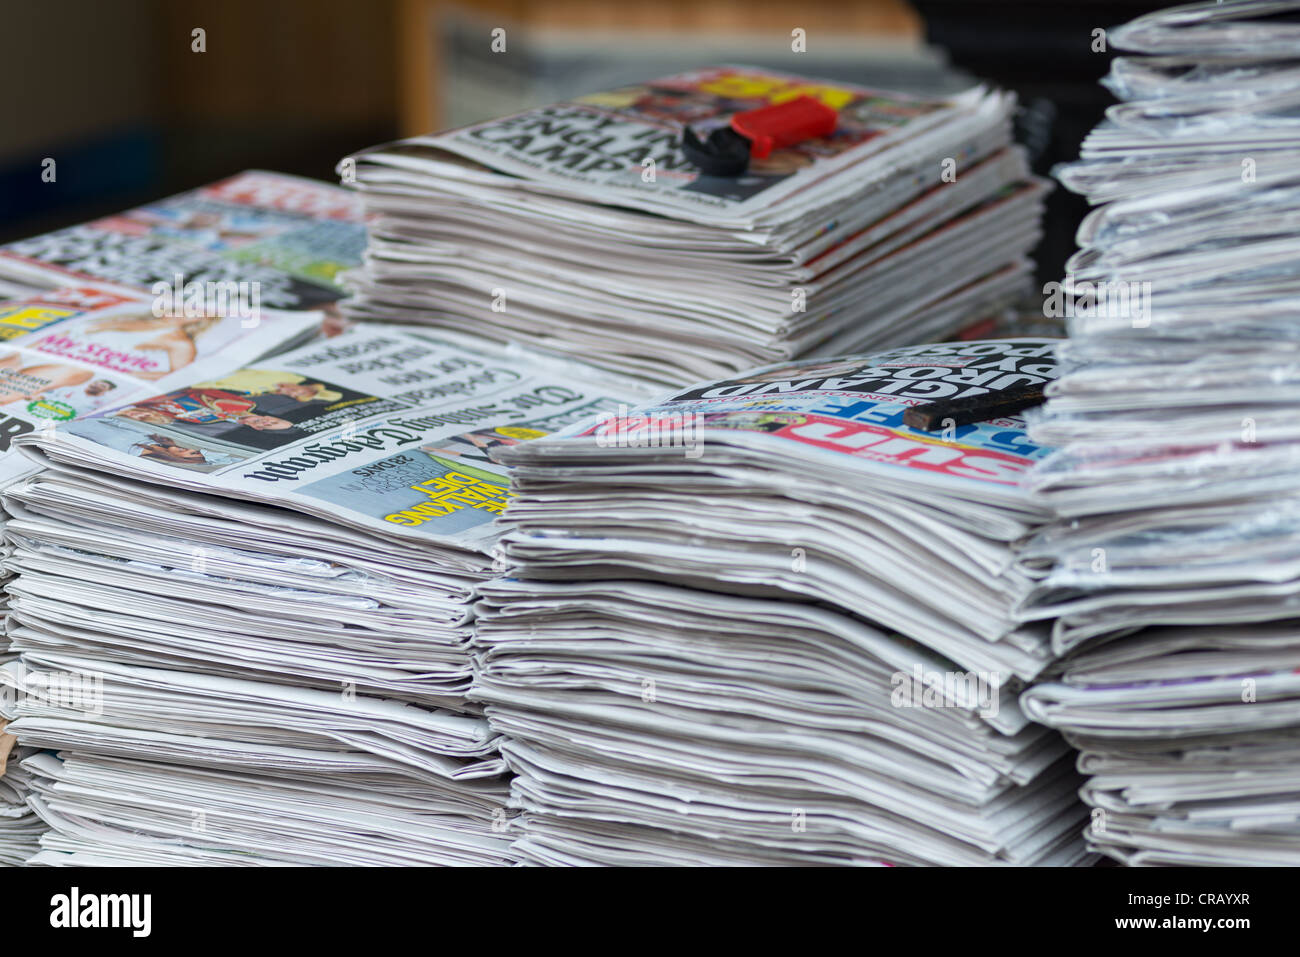 British newspapers on sales at stall in London, England. - Stock Image